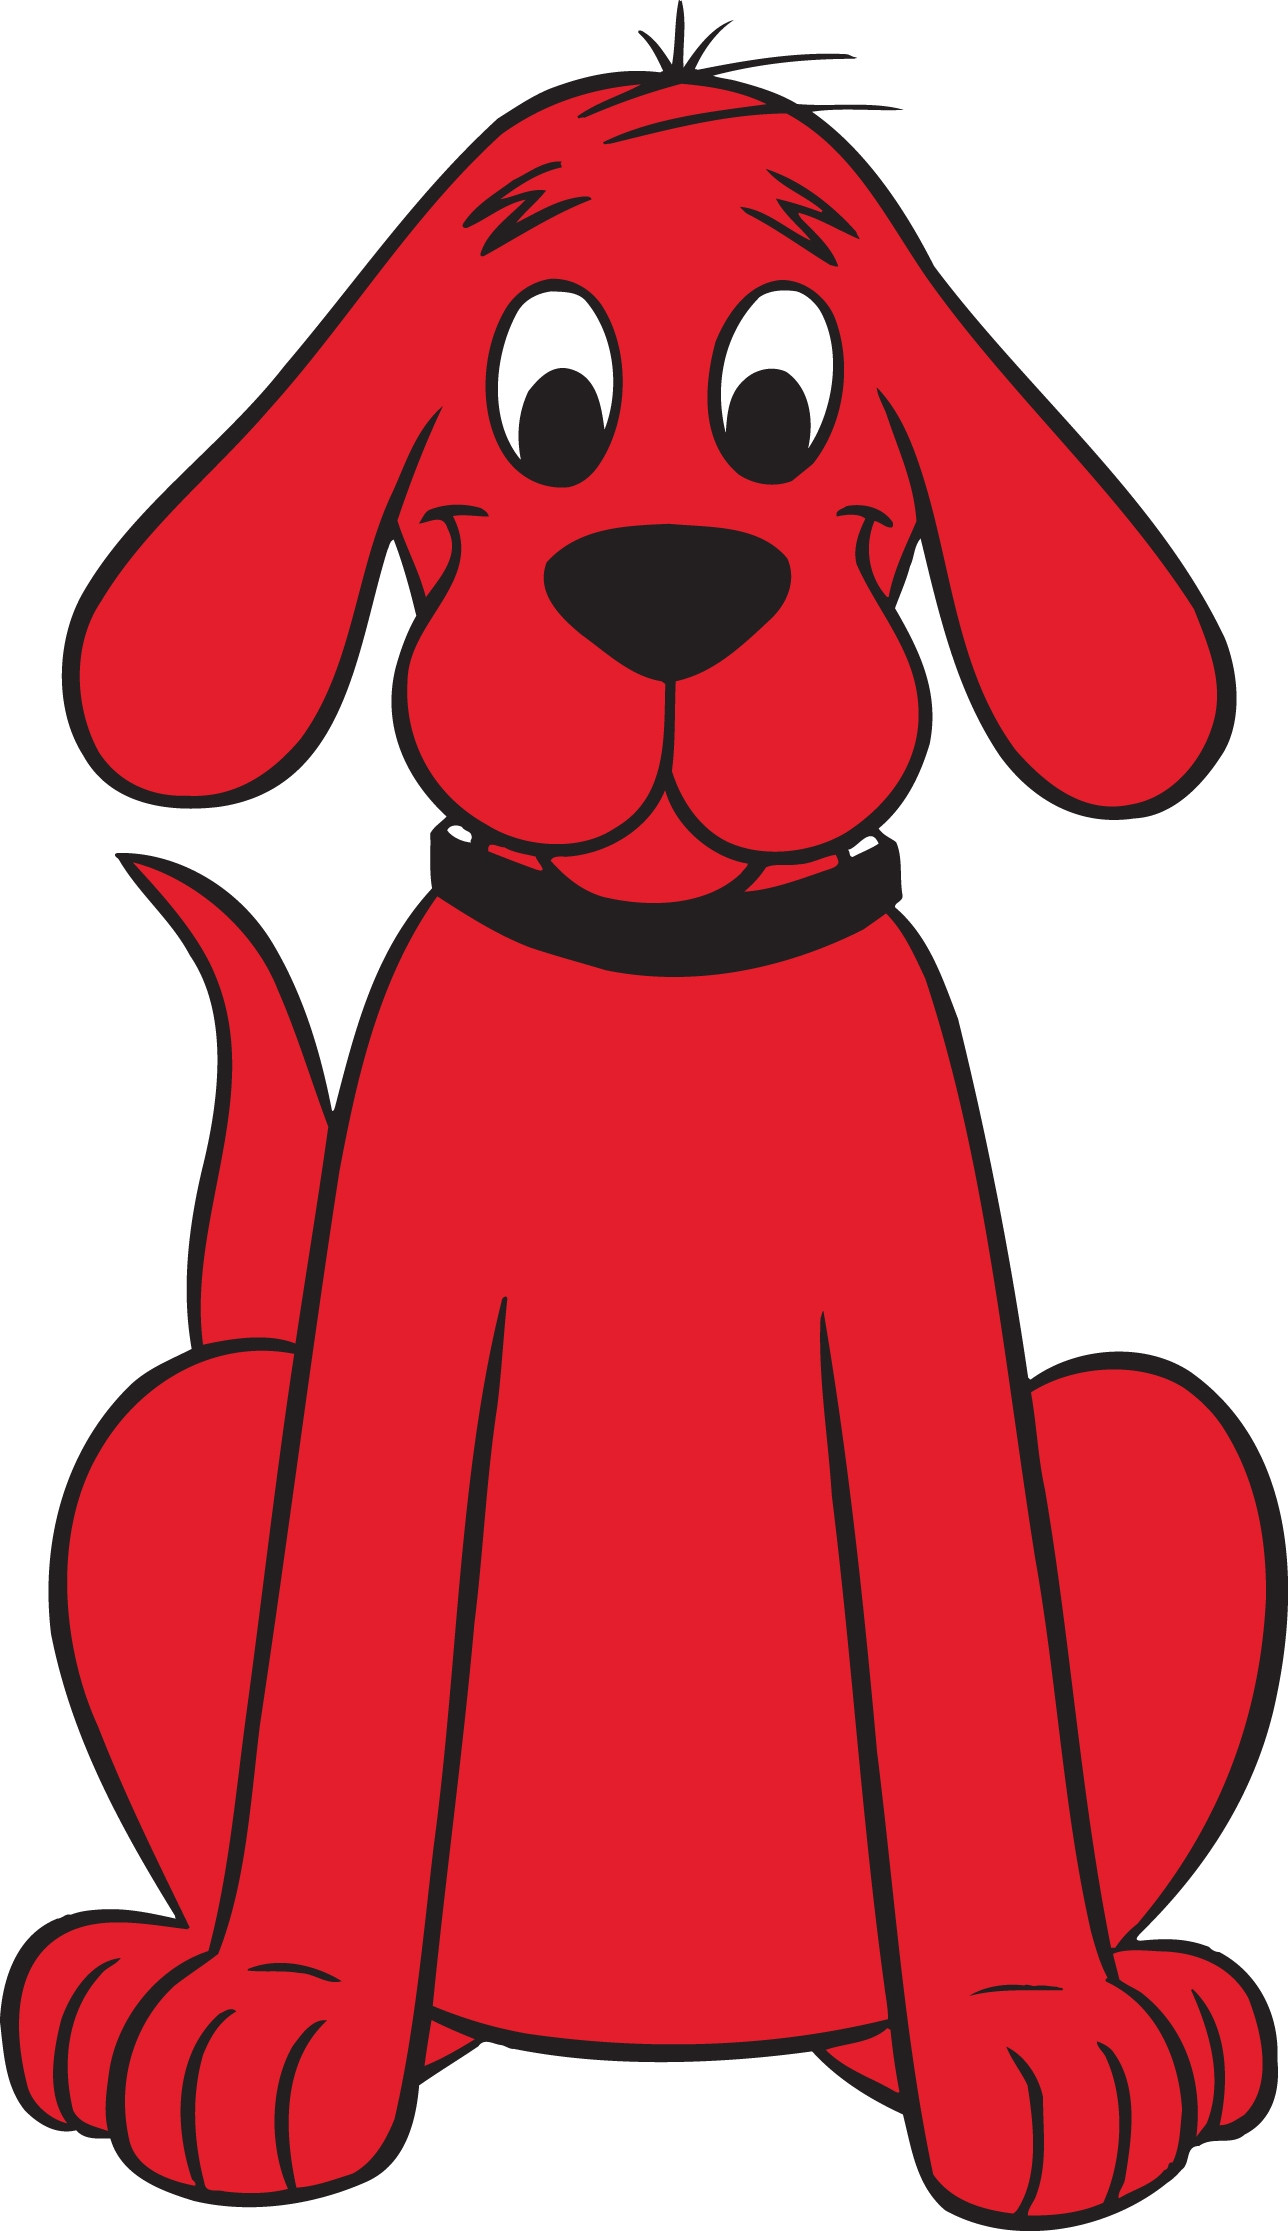 Student with big nose clipart svg transparent stock 17 Best images about Clifford the Big Red Dog on Pinterest ... svg transparent stock